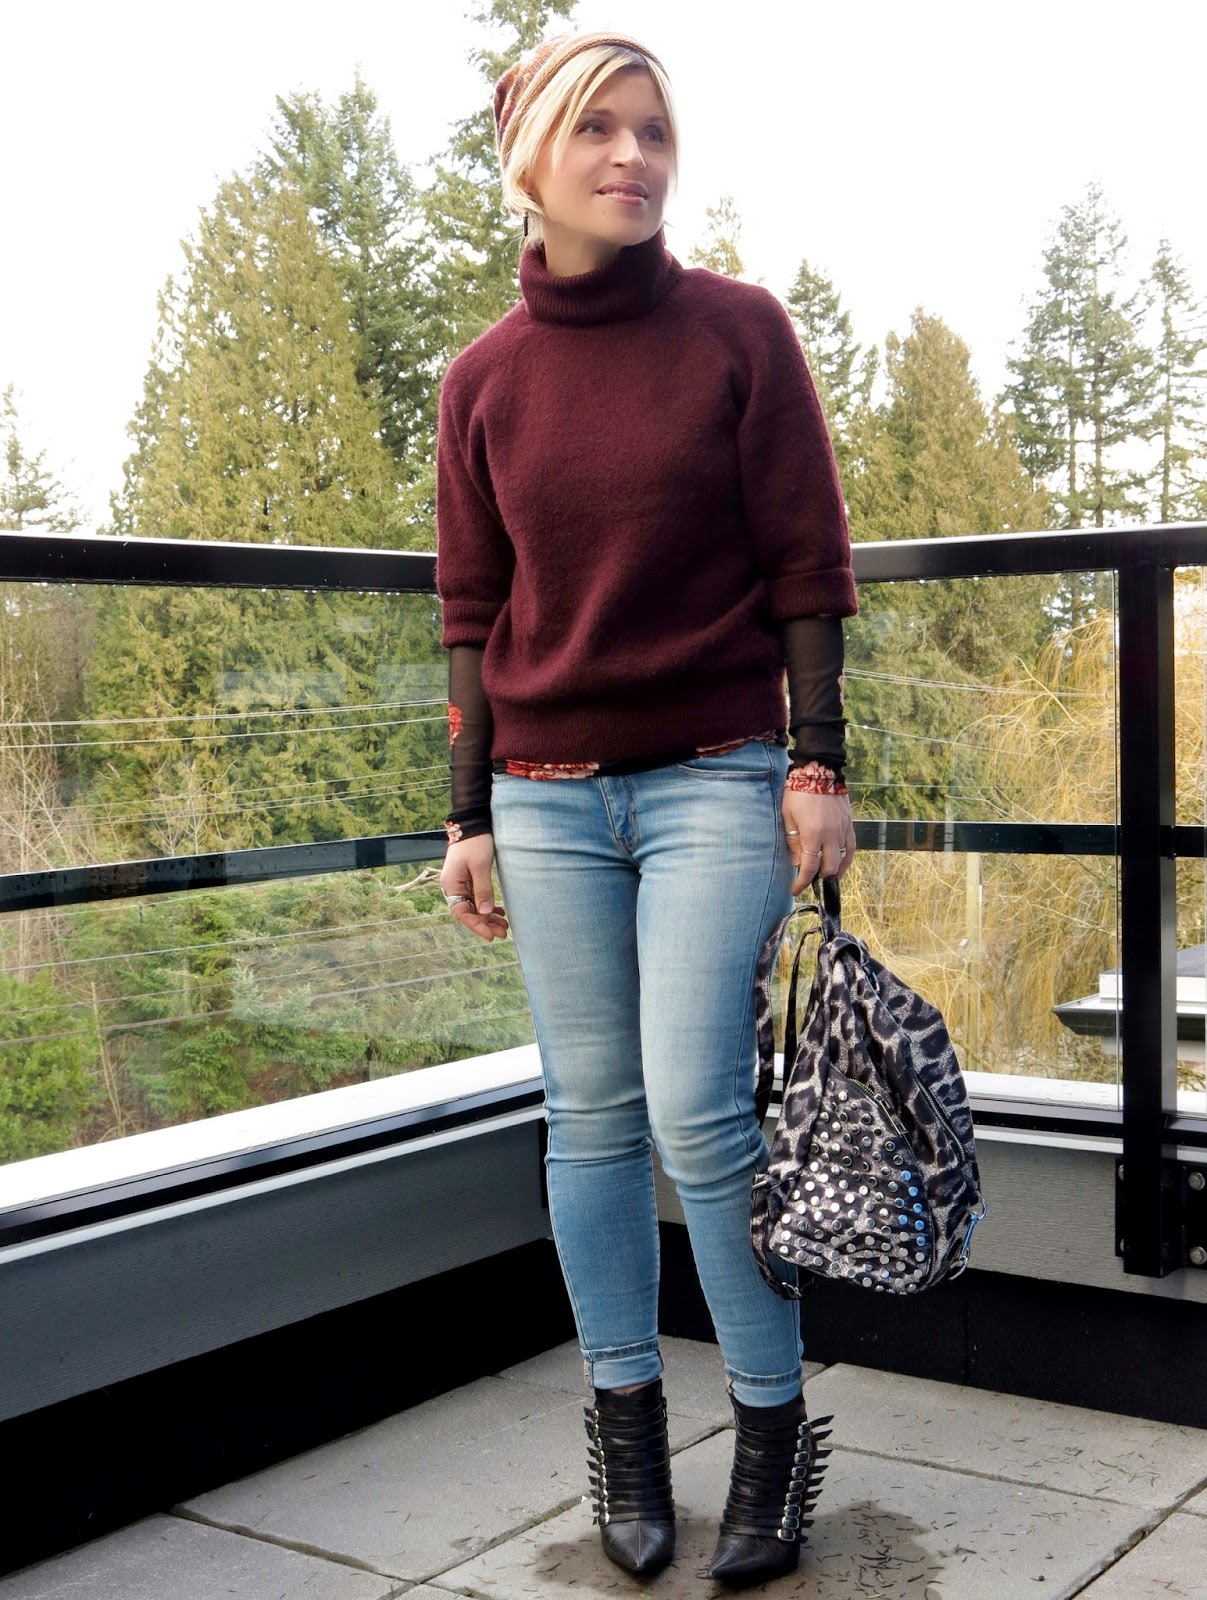 styling a sheer floral top under a chunky turtleneck, with skinny jeans, stiletto booties, and a beanie